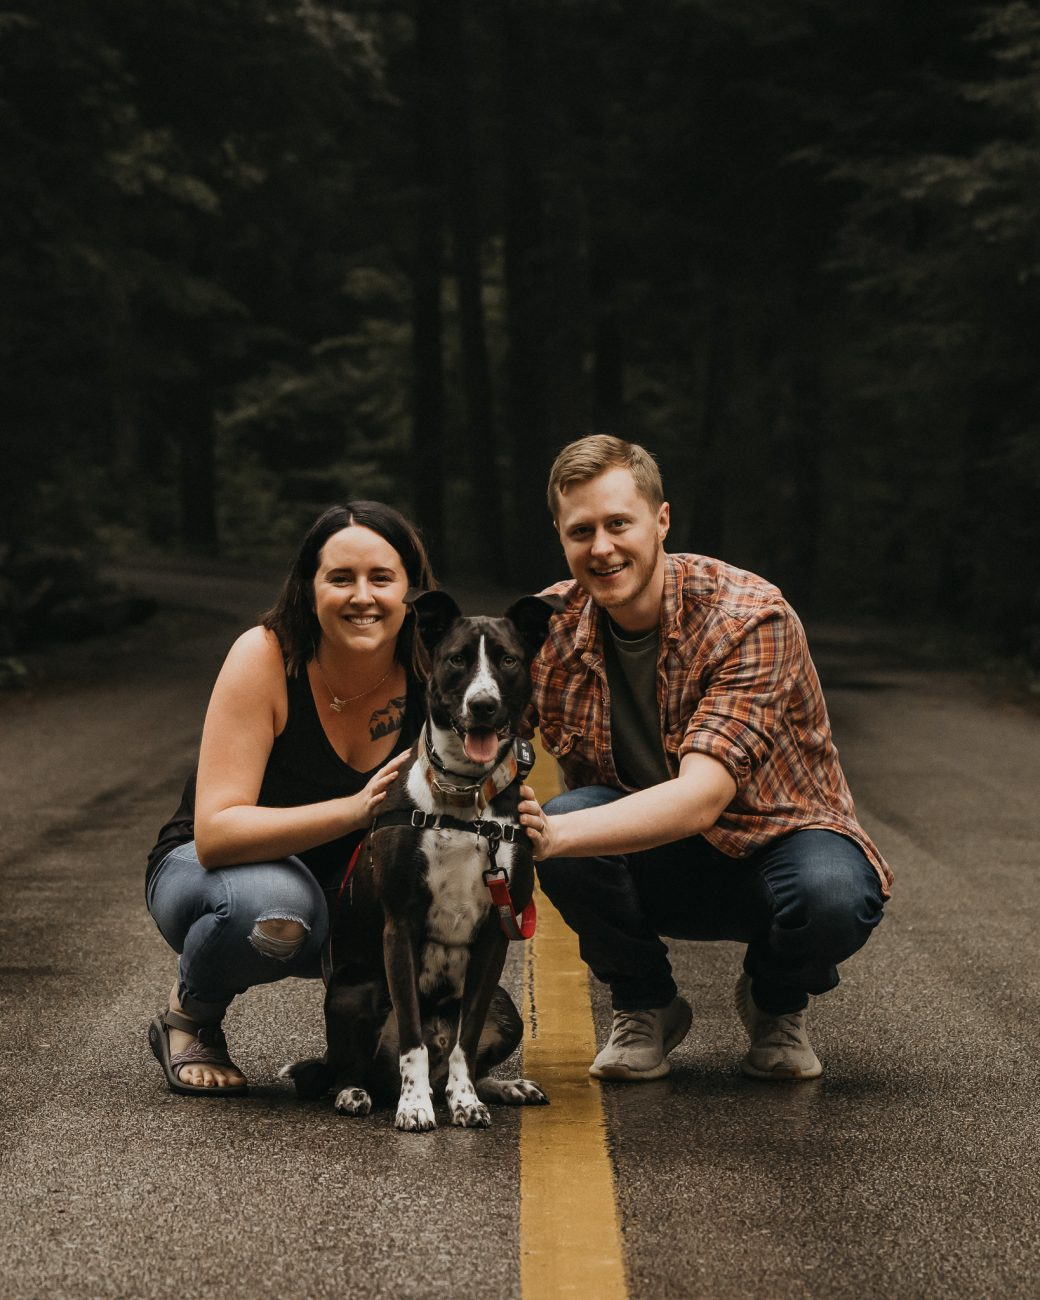 Taylor Engagement Session at Elkmont and Spence Cabin Great Smoky Mountain National Park Hunter Kittrell Photography 2021